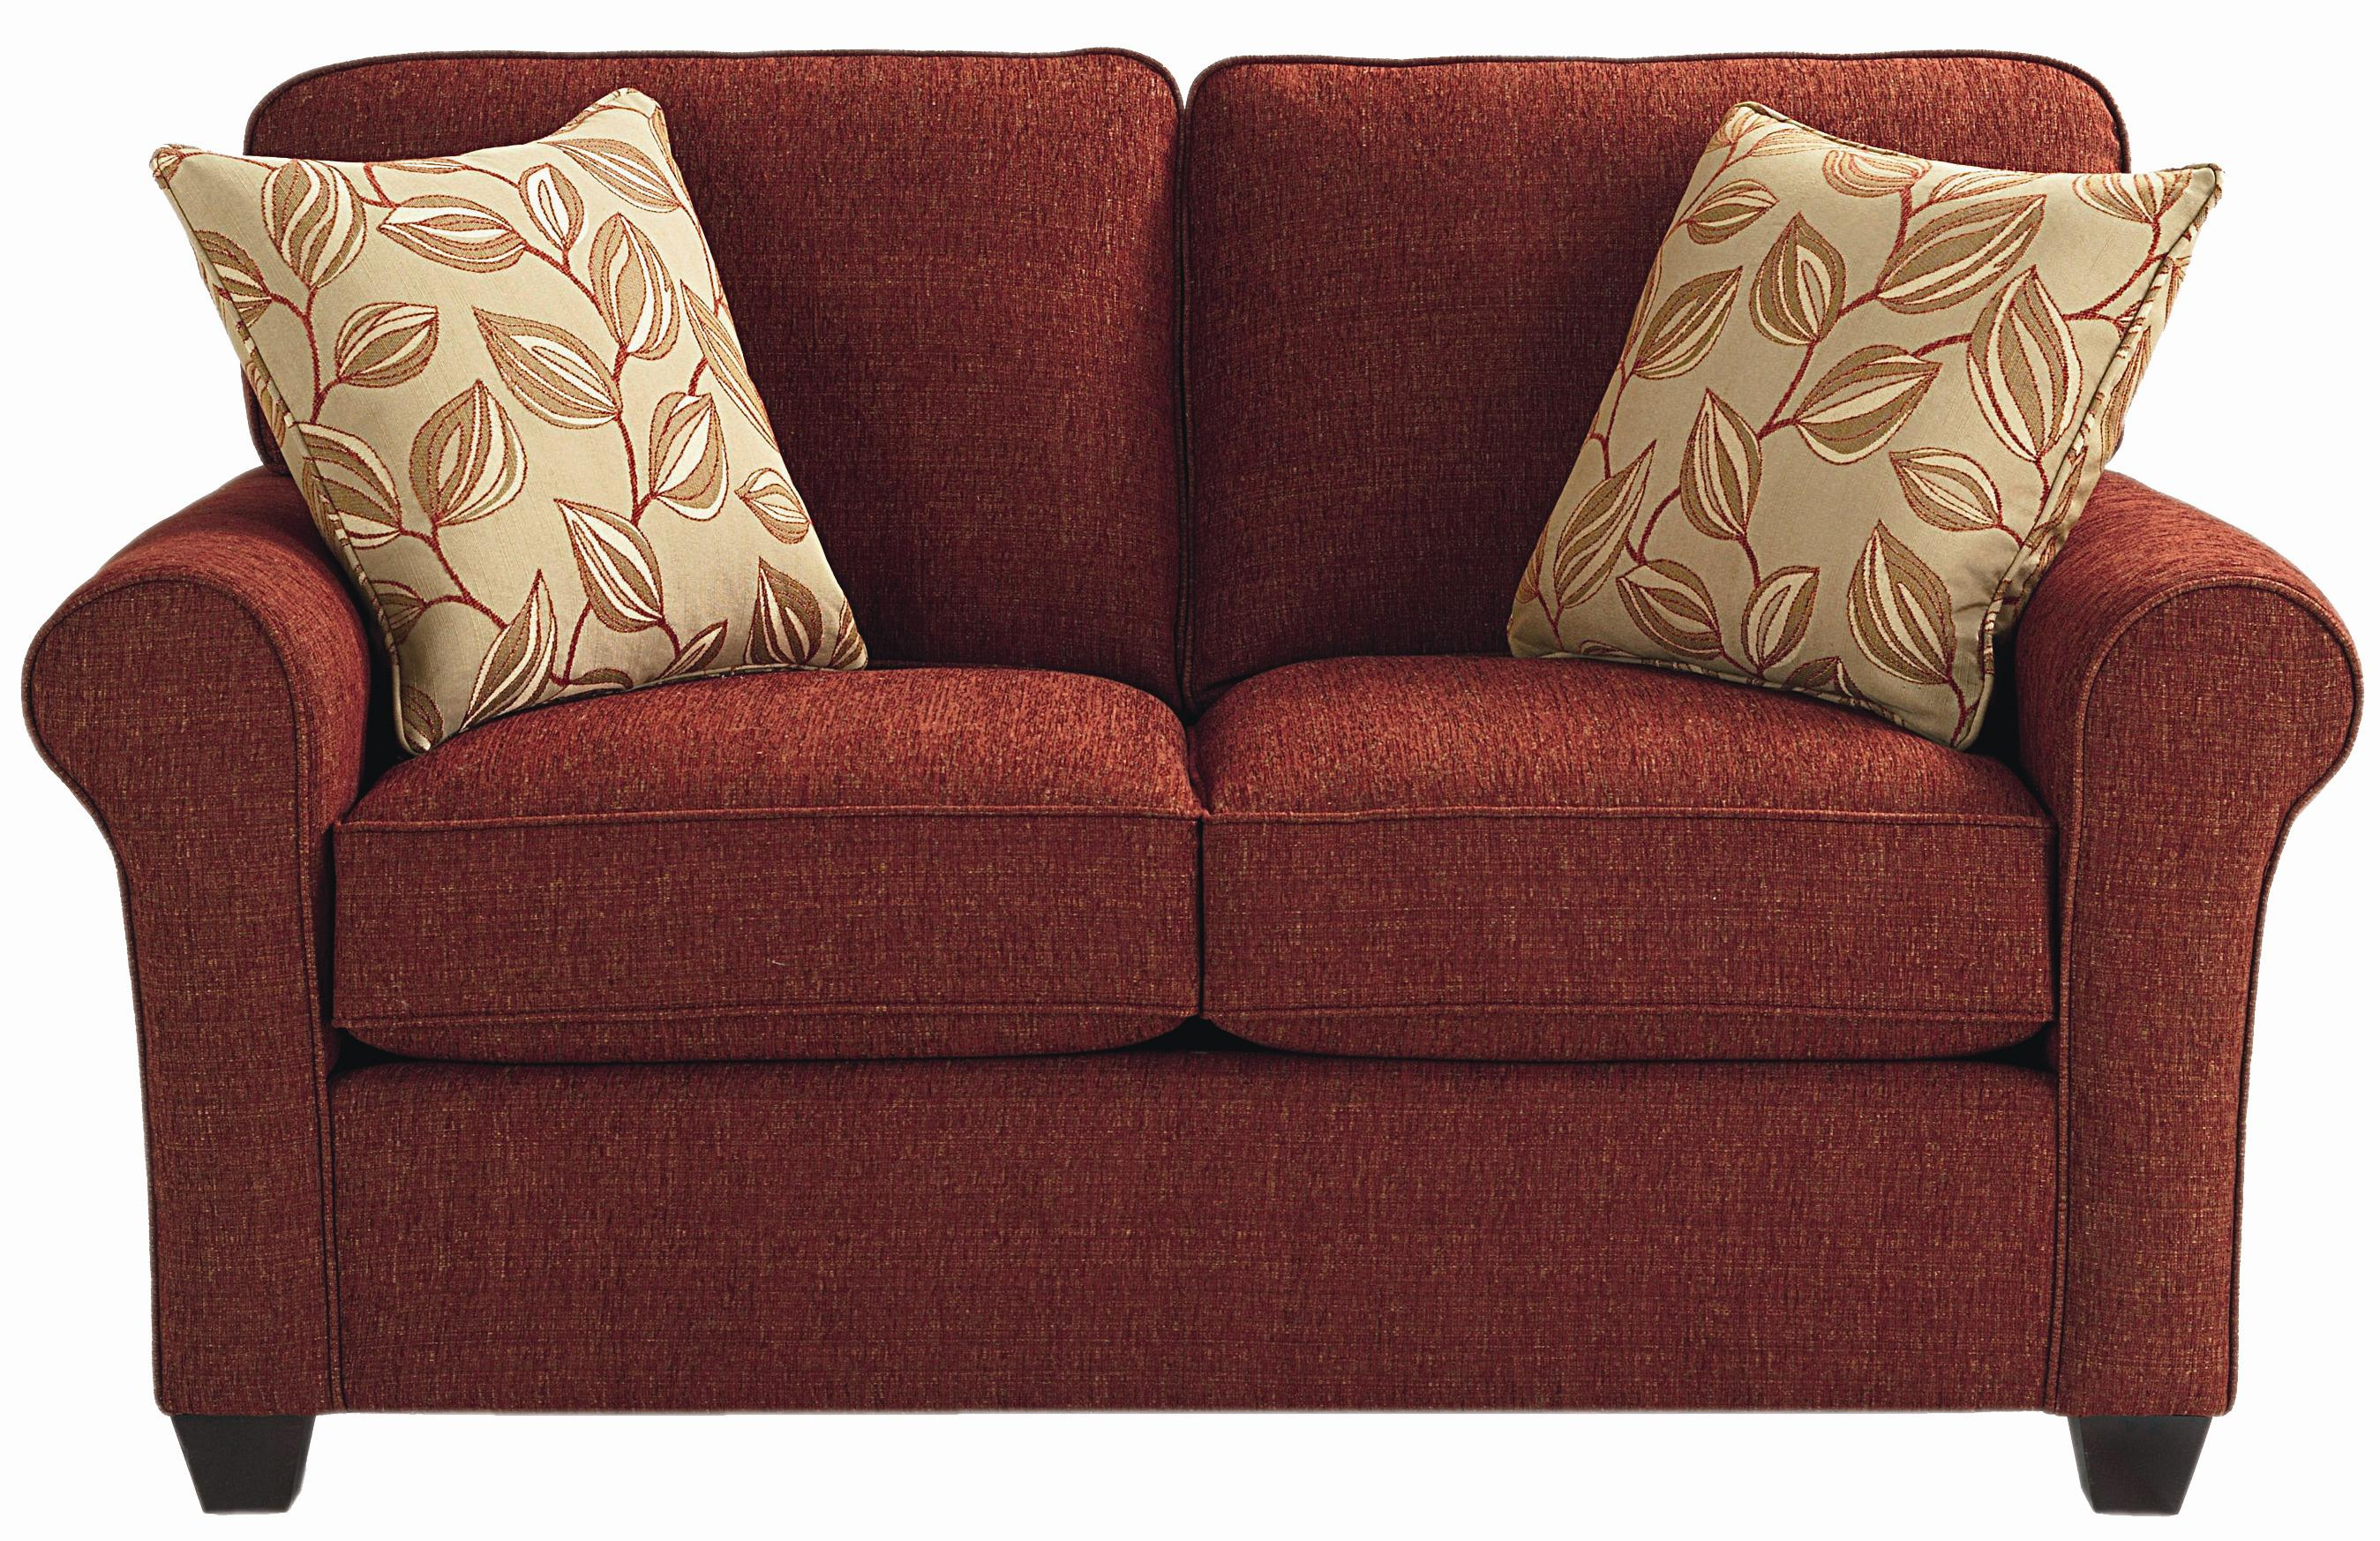 Brewster Upholstered Loveseat With Exposed Wood Feet By Bett